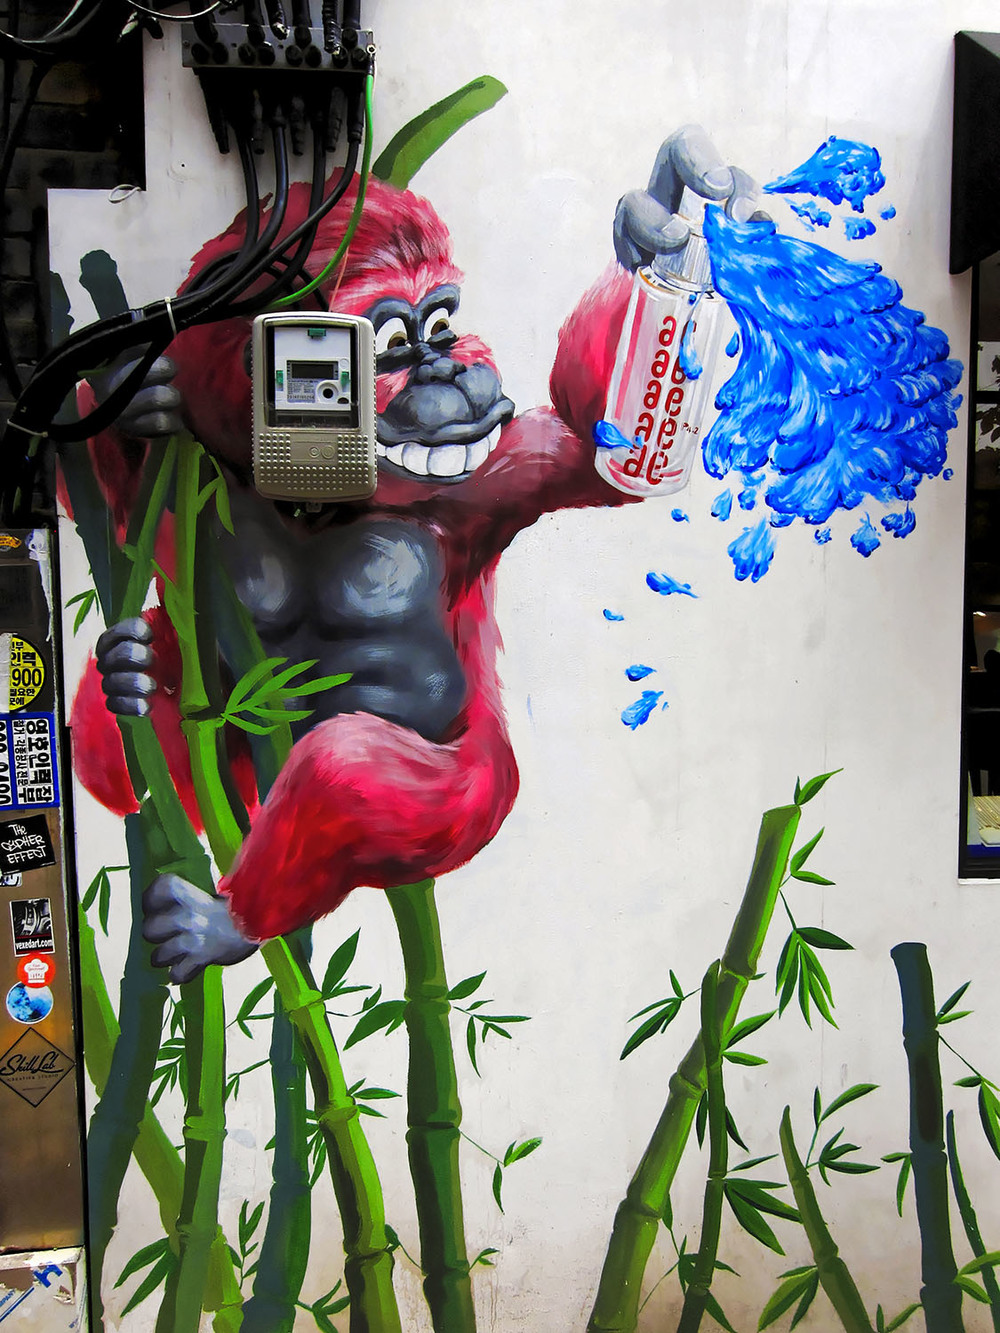 street art graffiti of a pink monkey on bamboos spraying in blue bukchon seoul